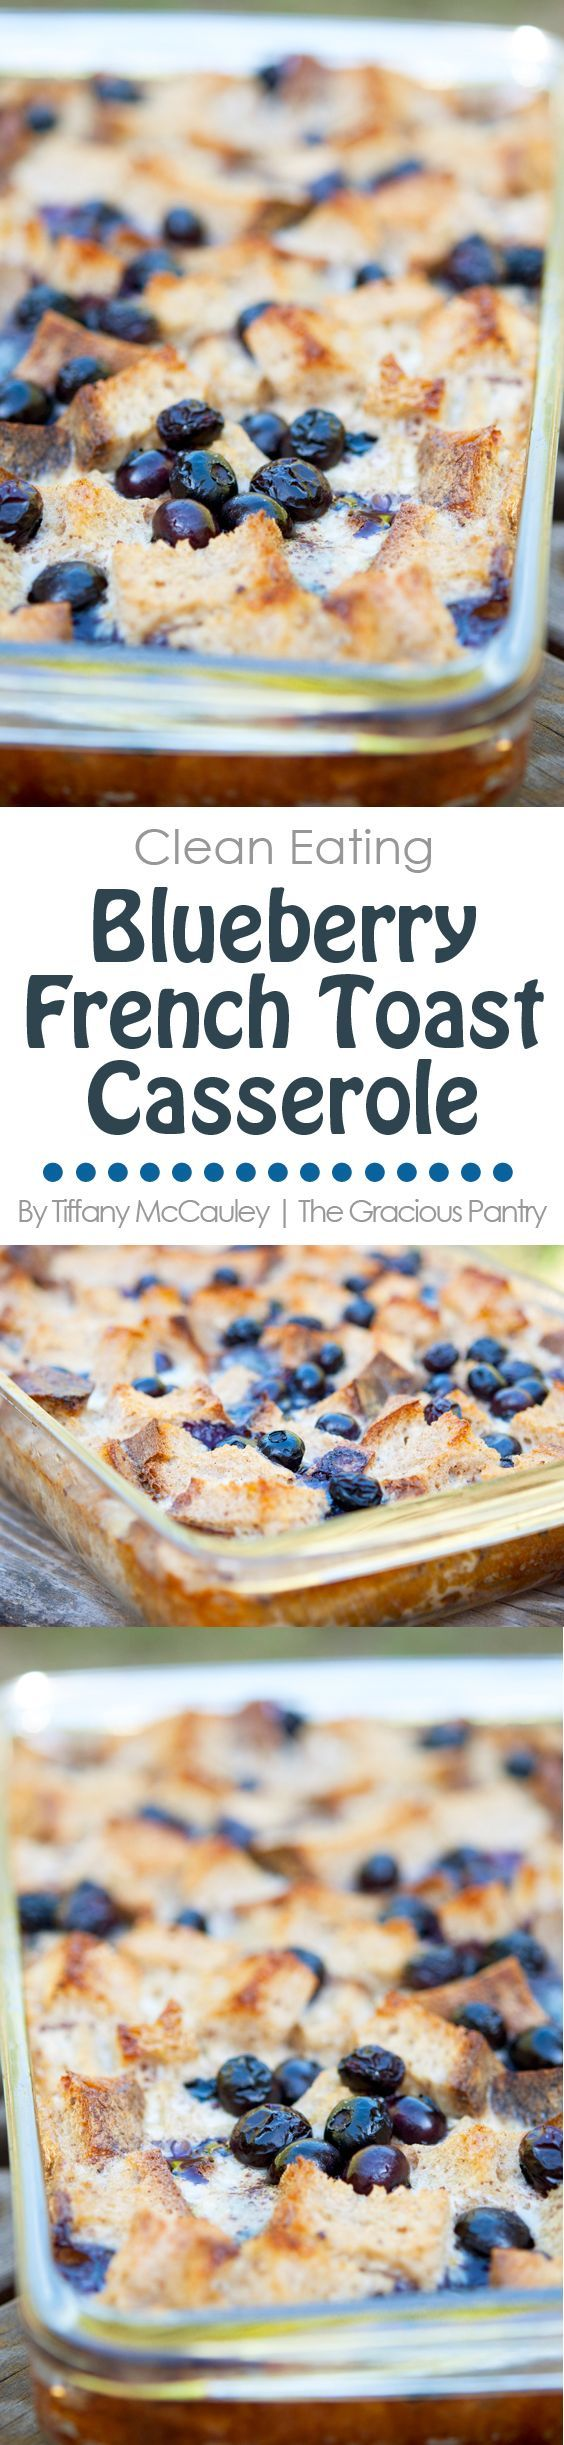 Clean Eating Blueberry French Toast Casserole. An oh-so-yummy option for a special occasion breakfast. ~ http://www.thegraciouspantry.com